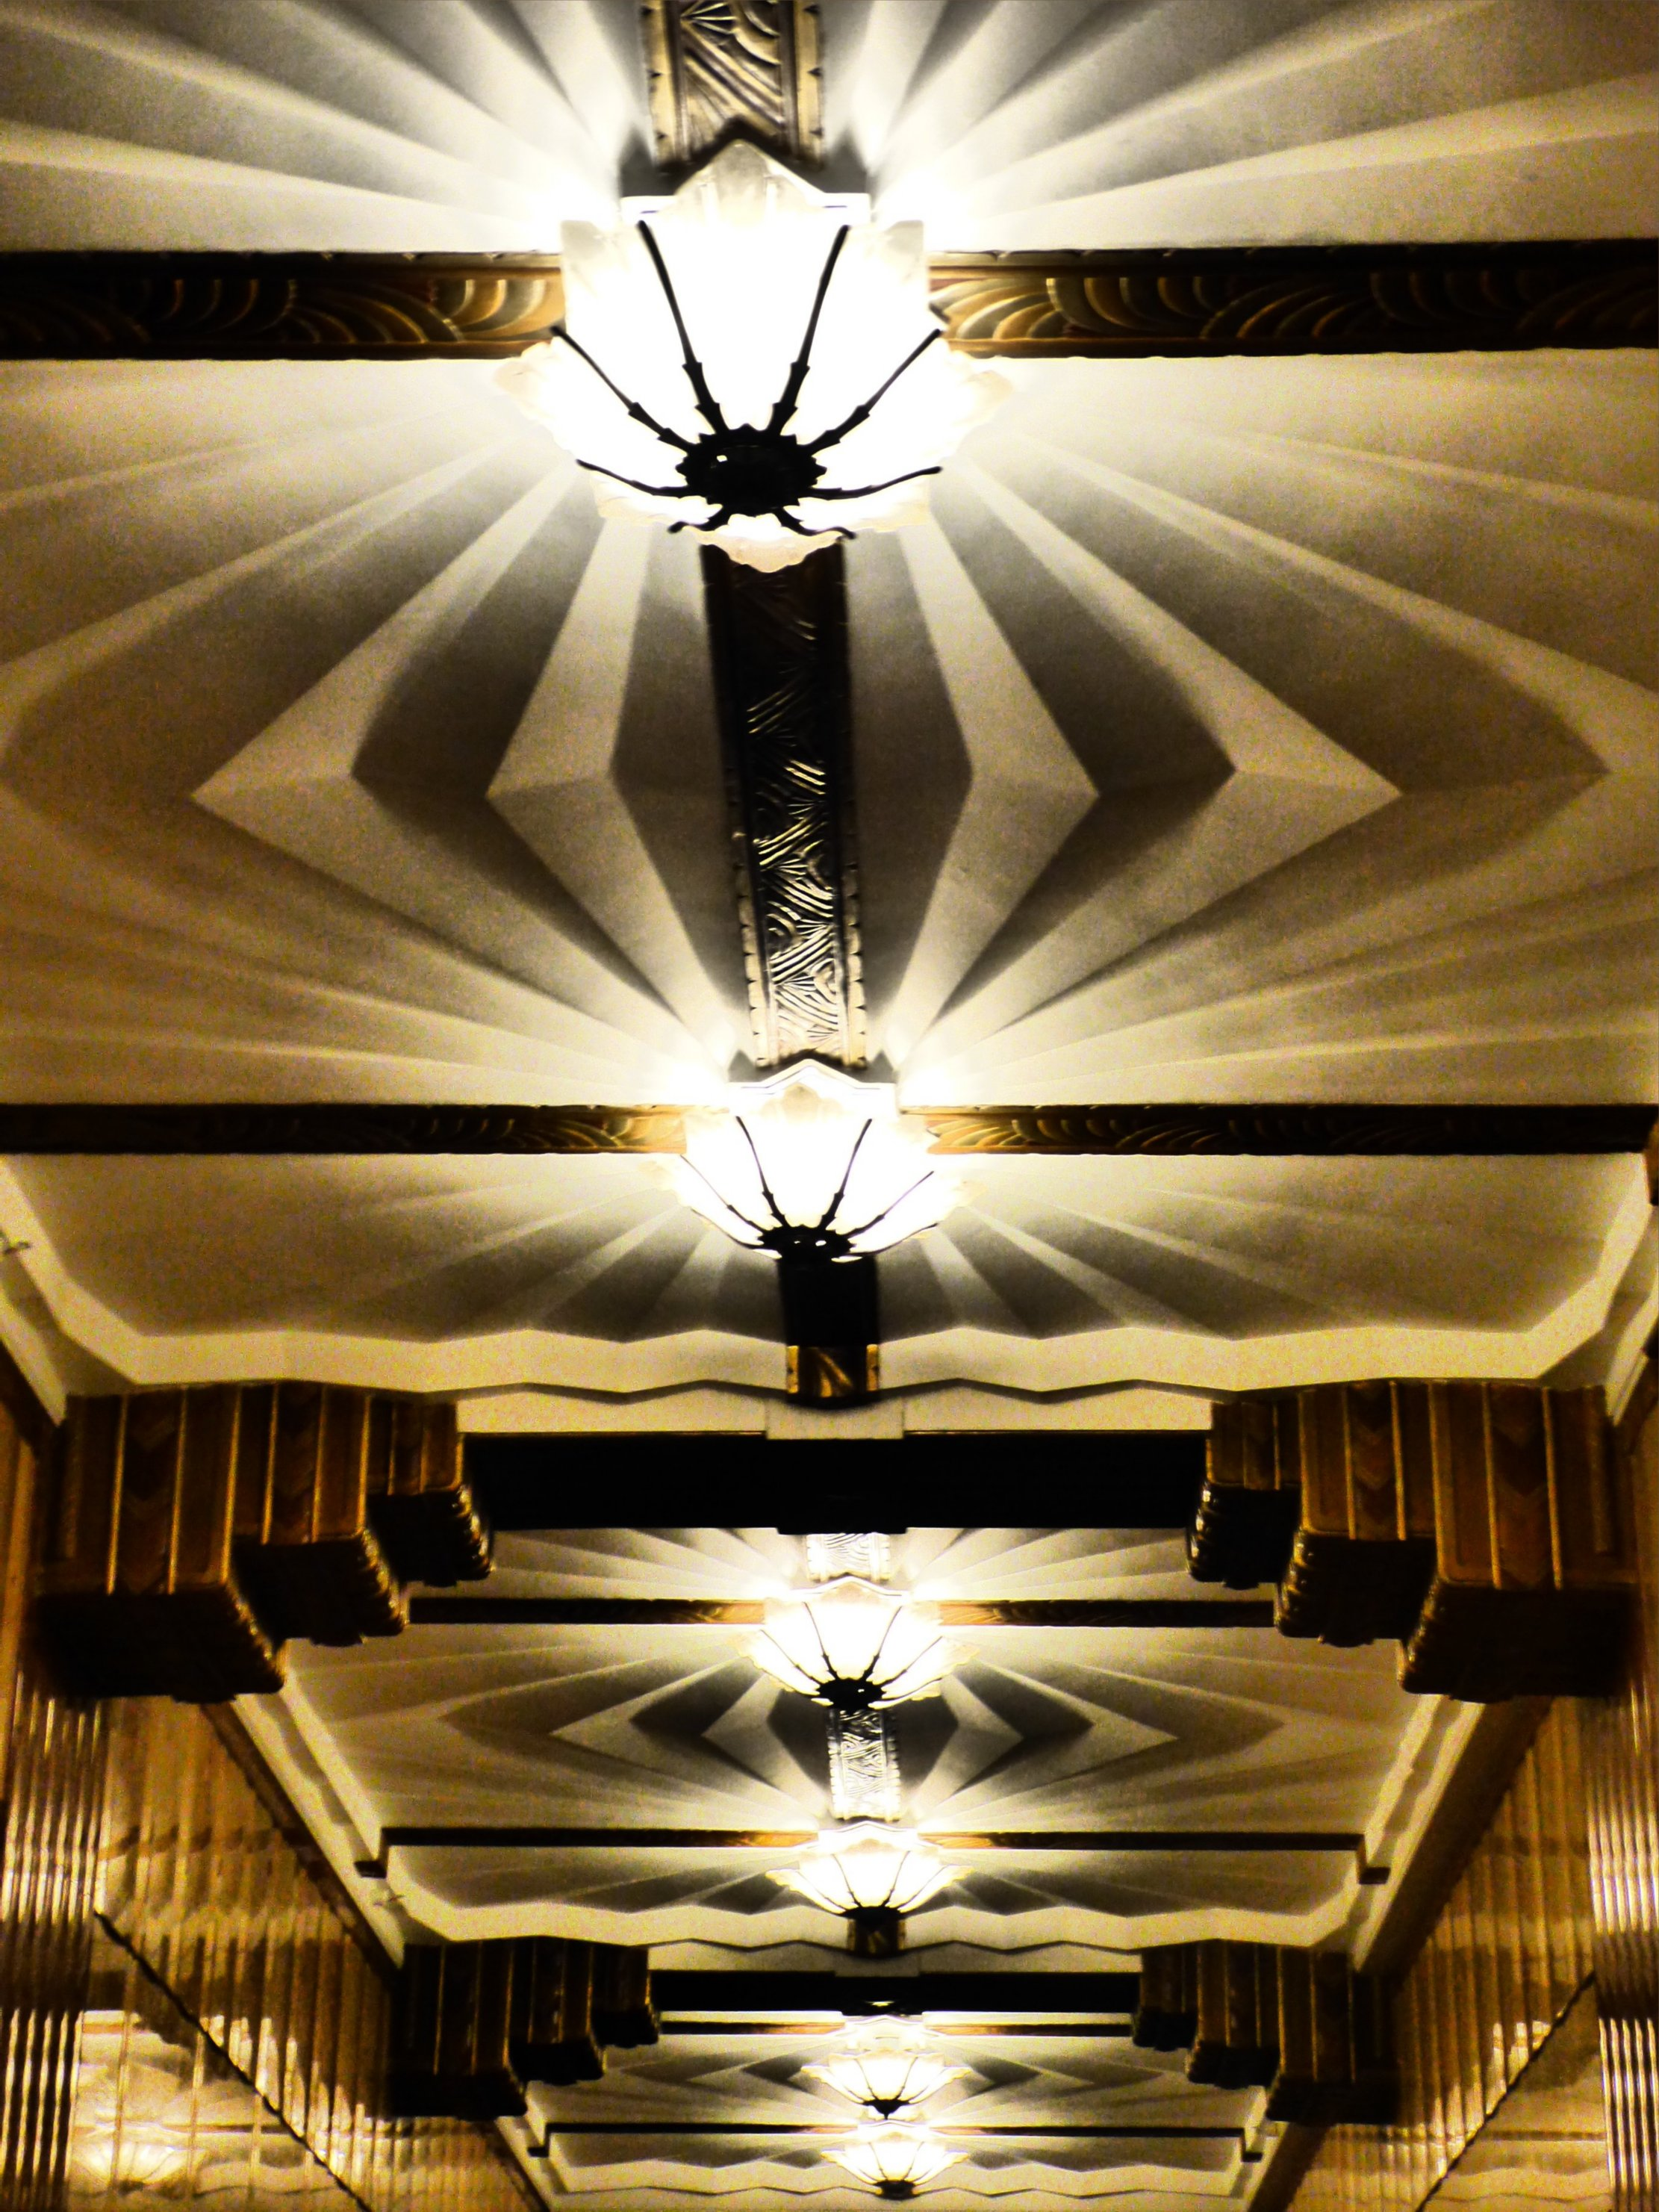 Fileart deco ceilingg wikimedia commons fileart deco ceilingg aloadofball Images